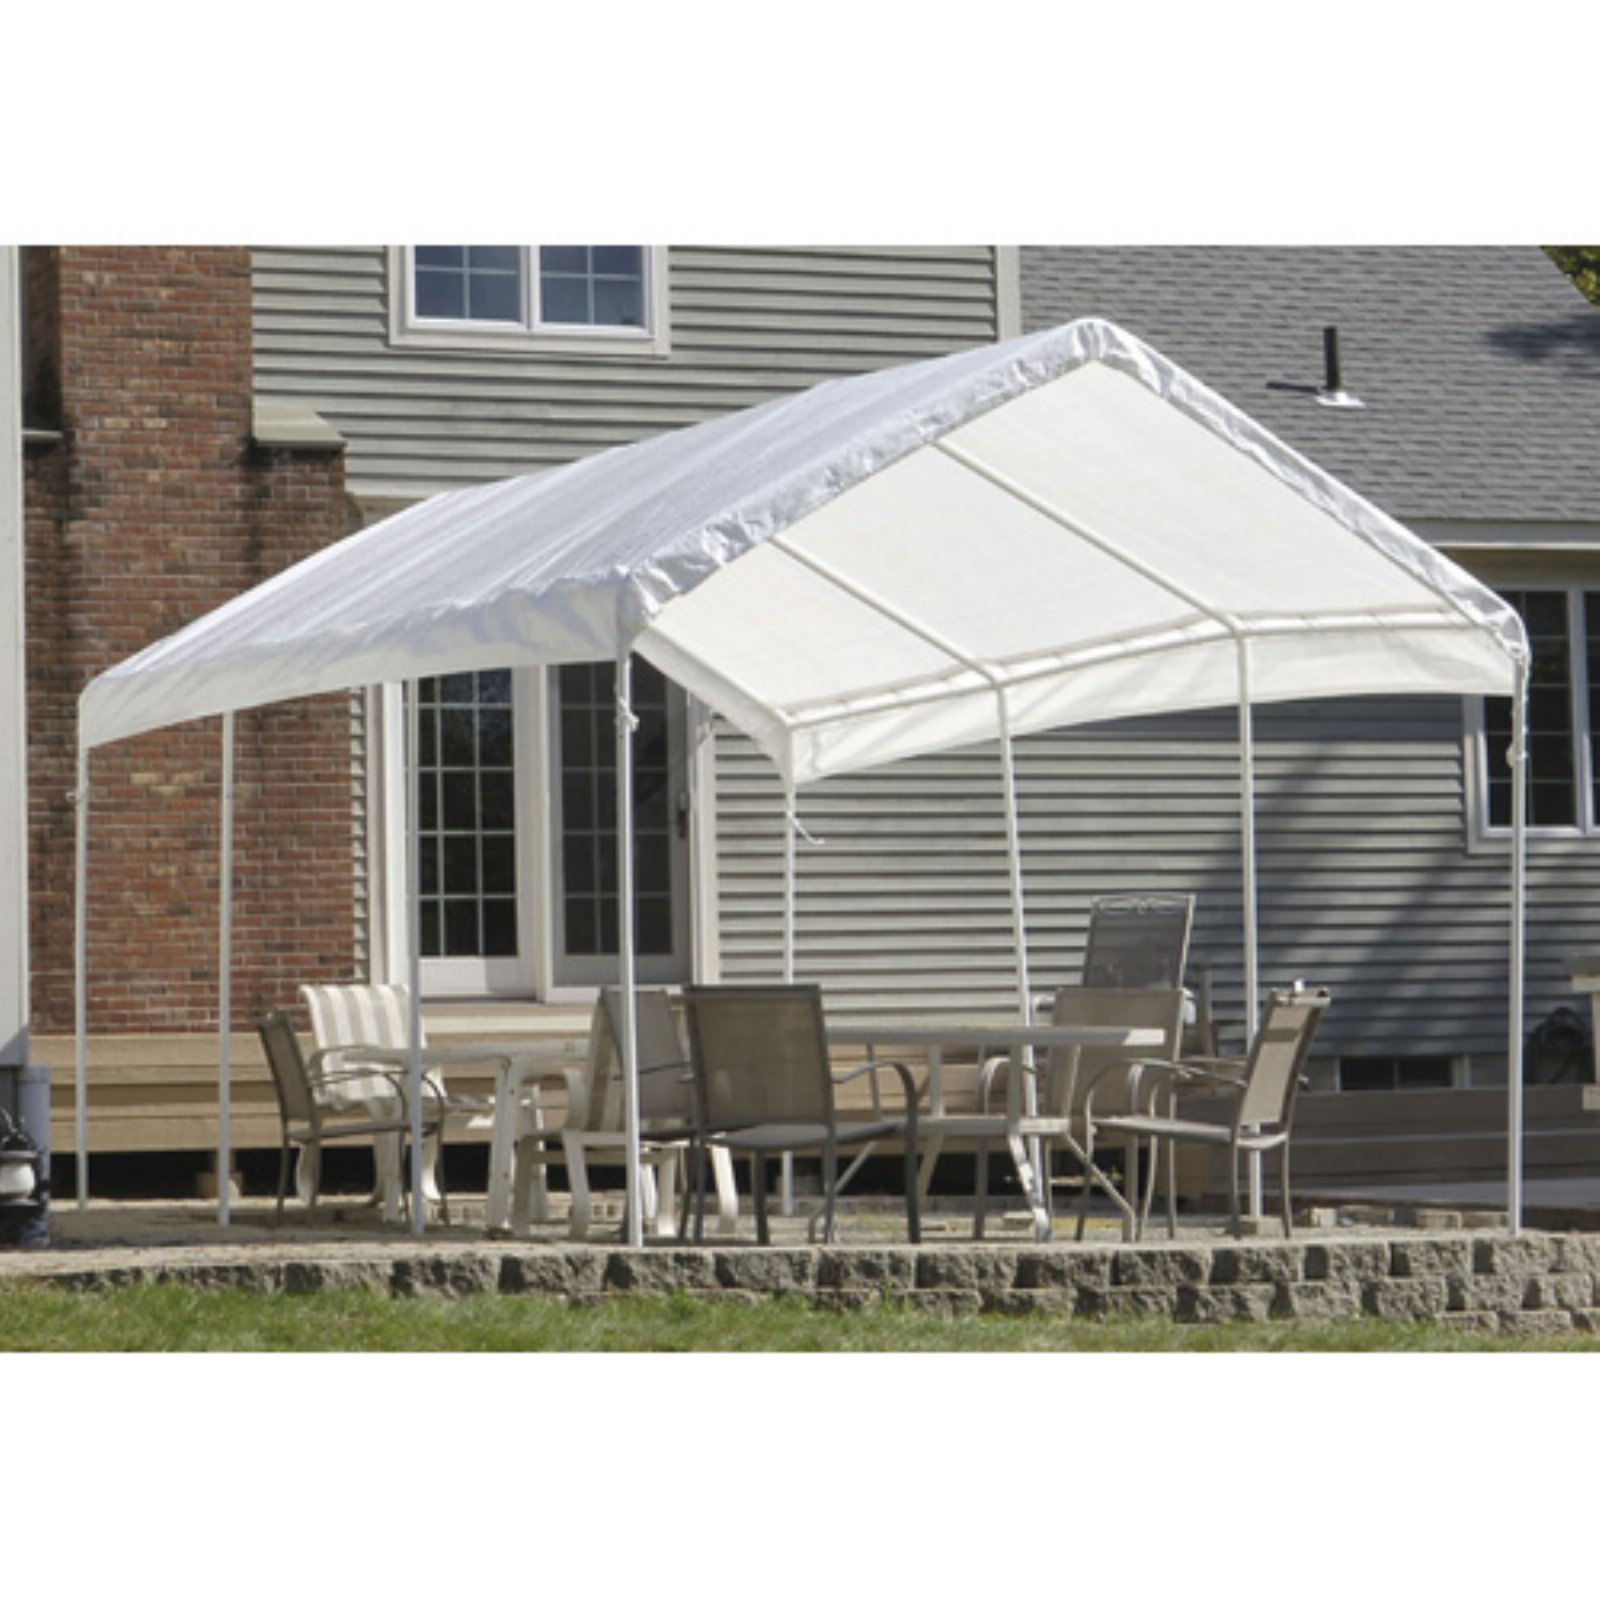 Shelterlogic SuperMax 10' x 20' All Purpose Canopy Replacement Cover by ShelterLogic